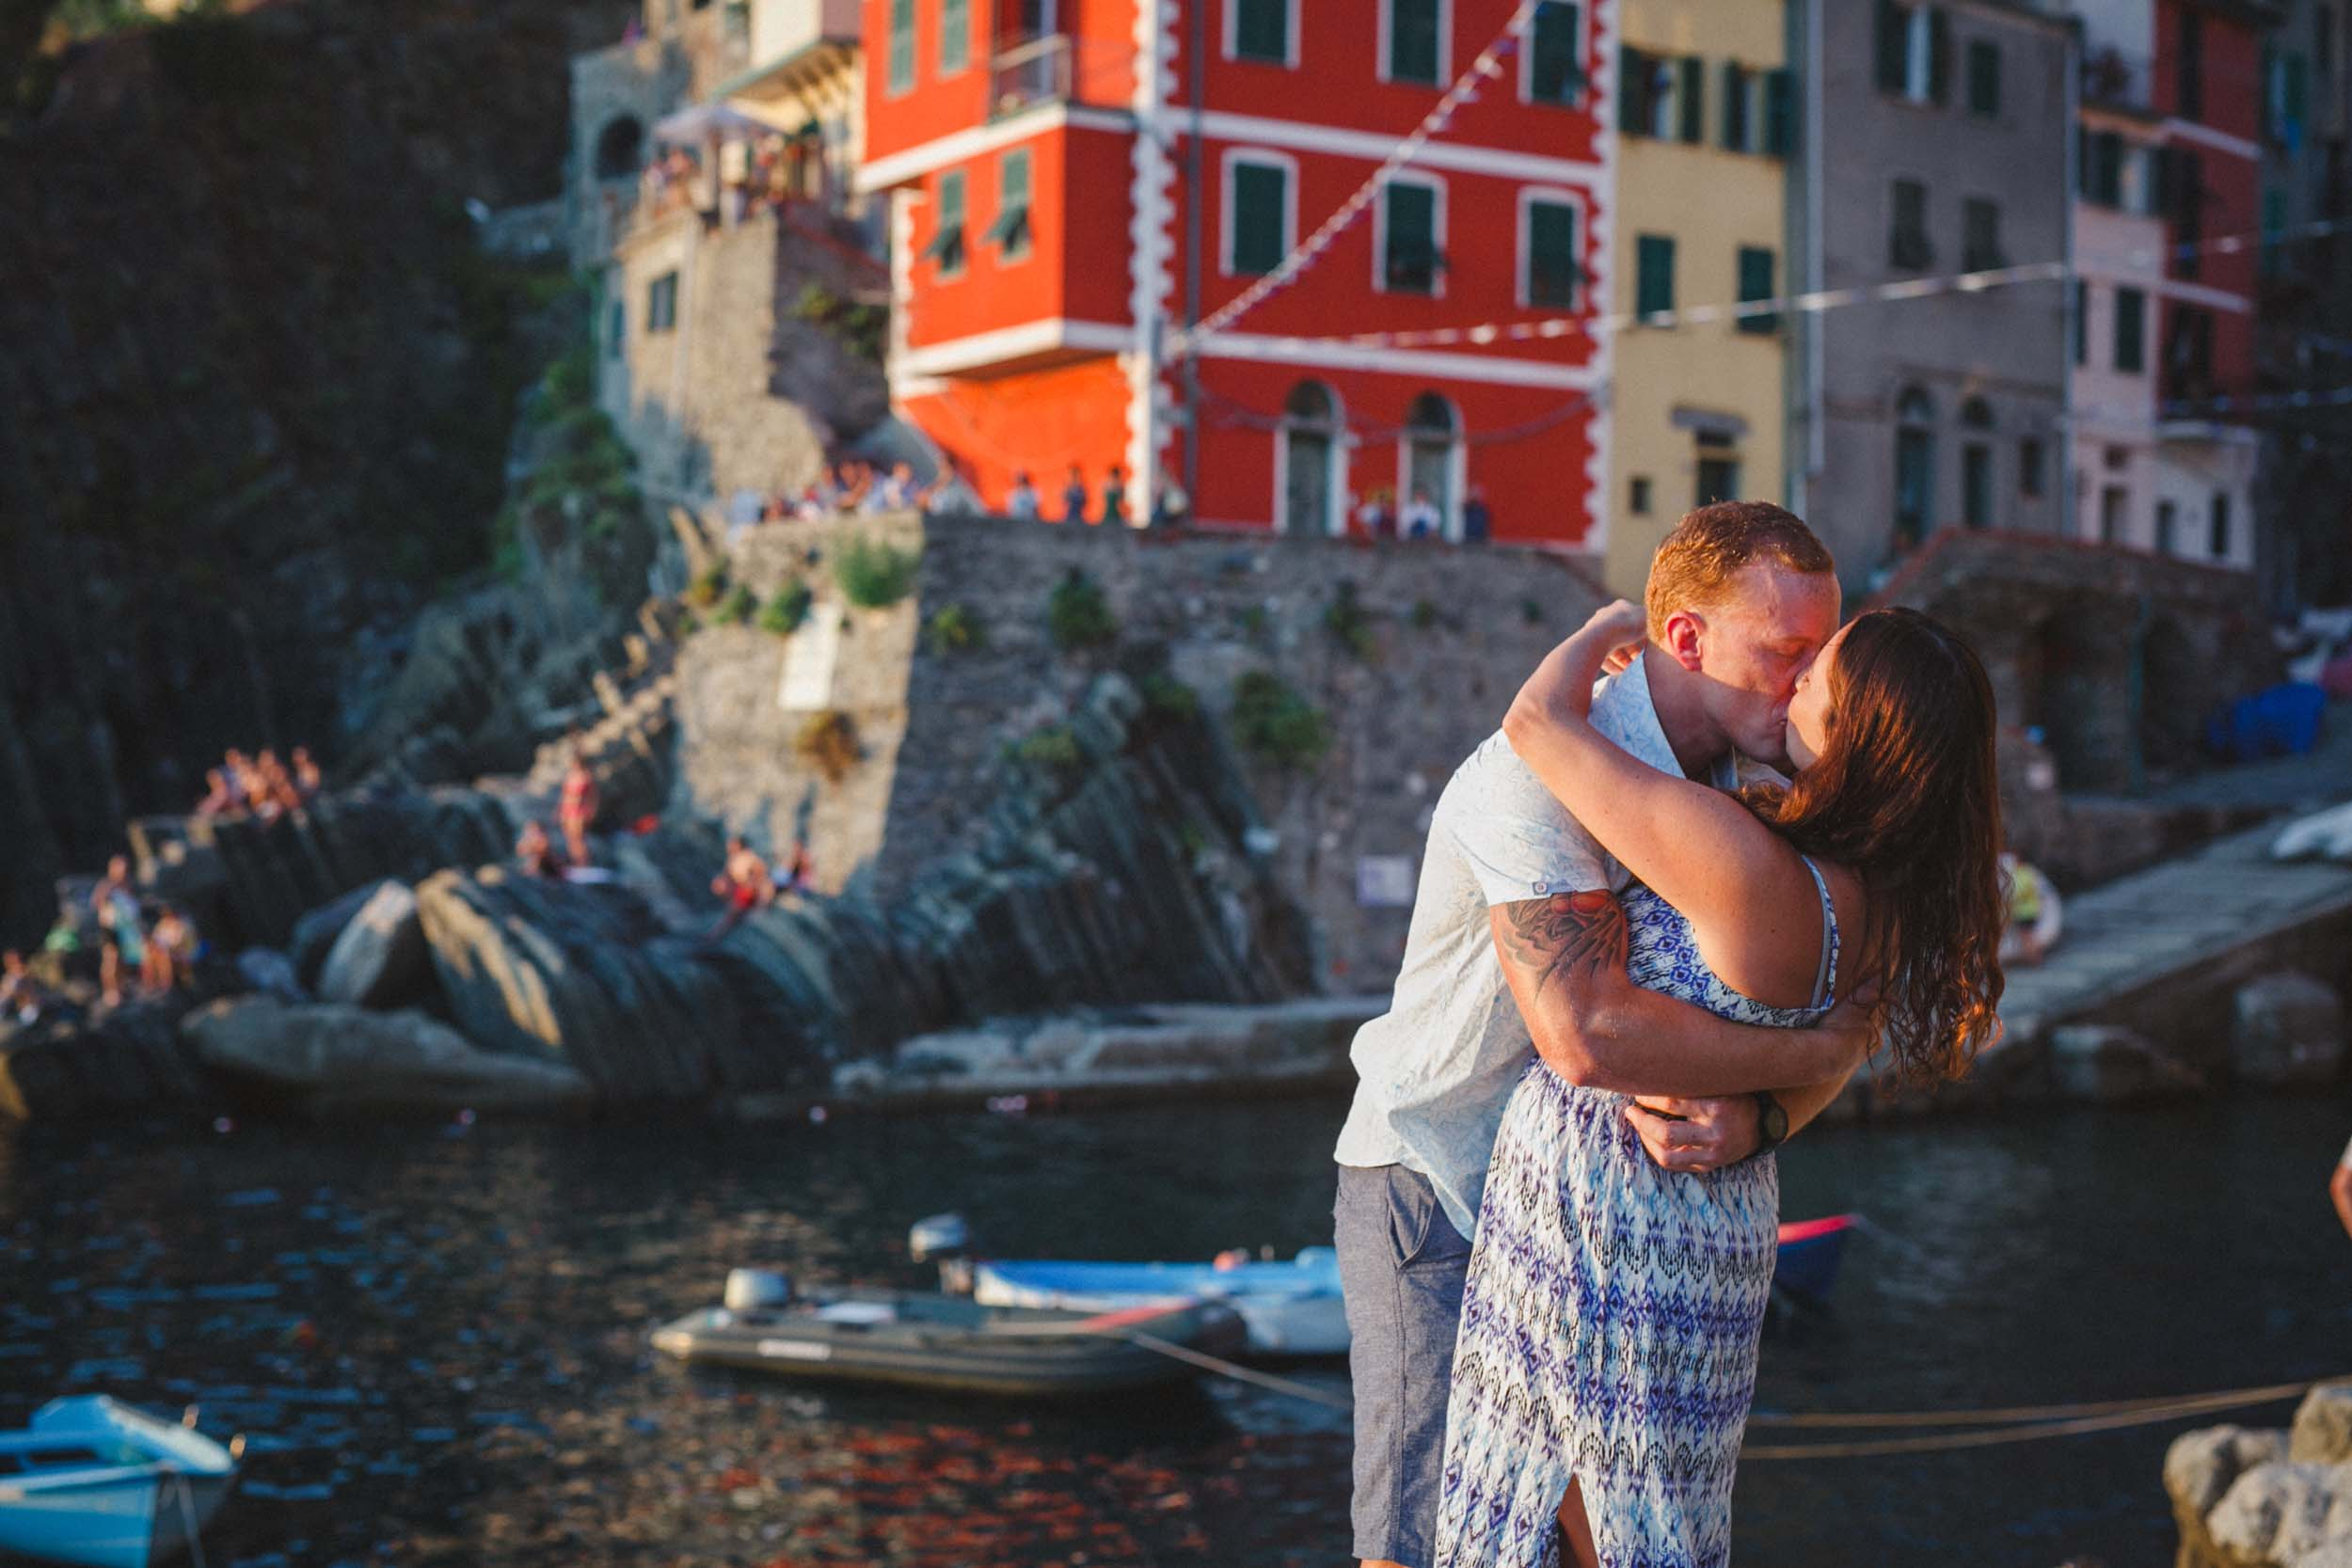 A Cinque Terre Proposal Inspired by the Beauty of the Seaside